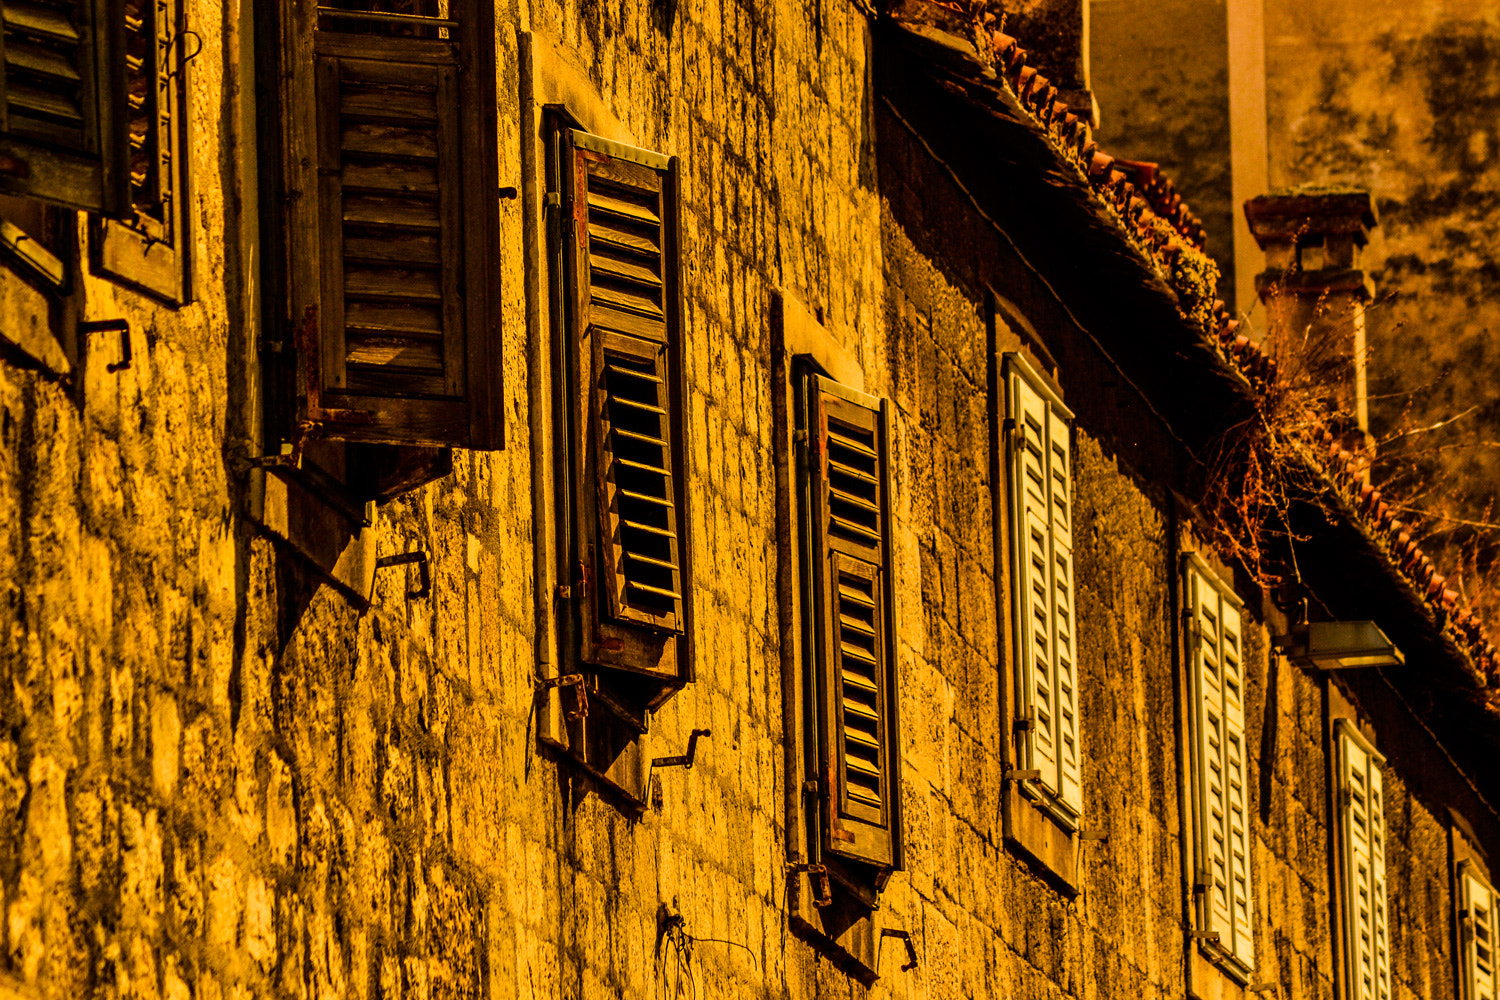 Photograph windows by LH Padovan on 500px